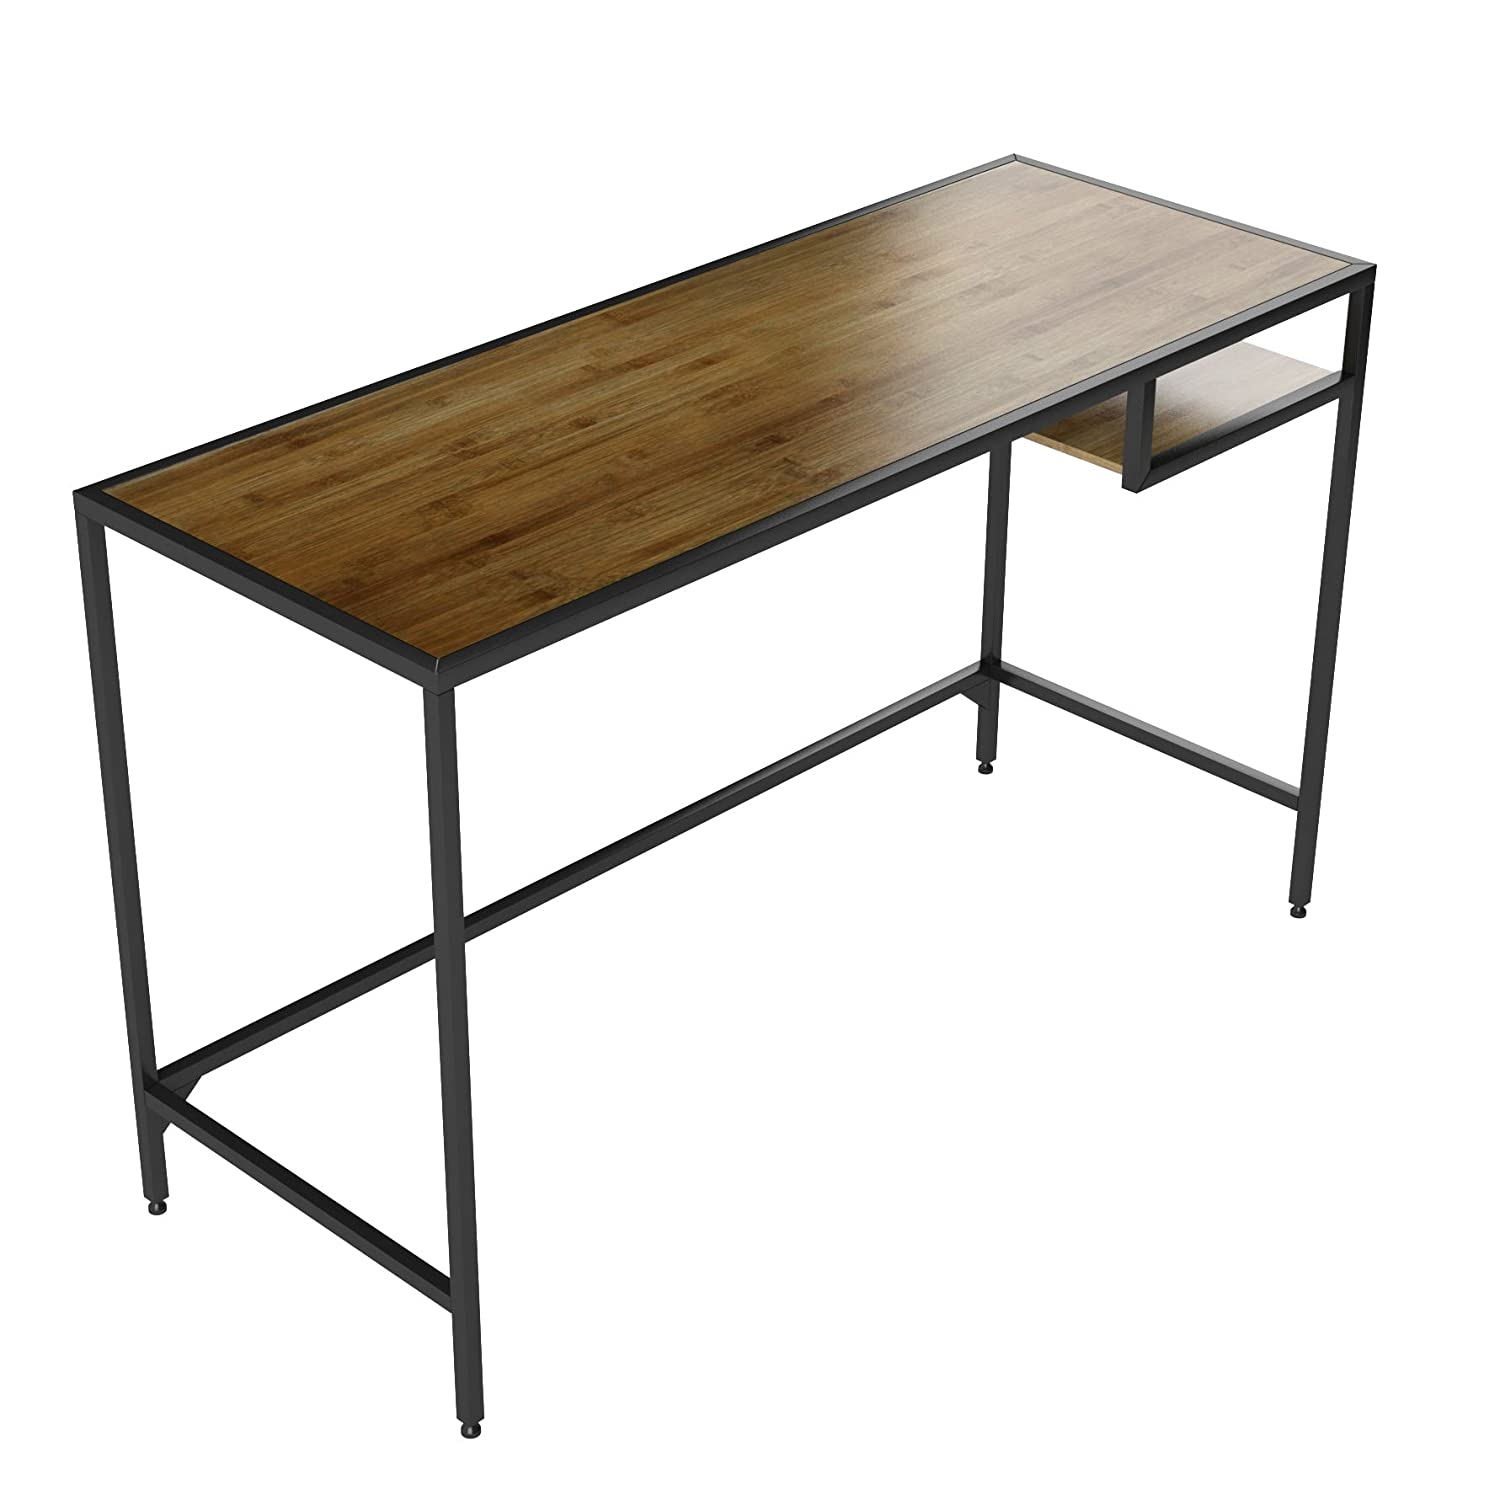 Amazing Amazon.com: Industrial Vintage Design Space Saver Entryway Hallway Console  Table Desk With Lower Shelf Storage , Wood Top And Metal Black Metal Frame:  Home ...